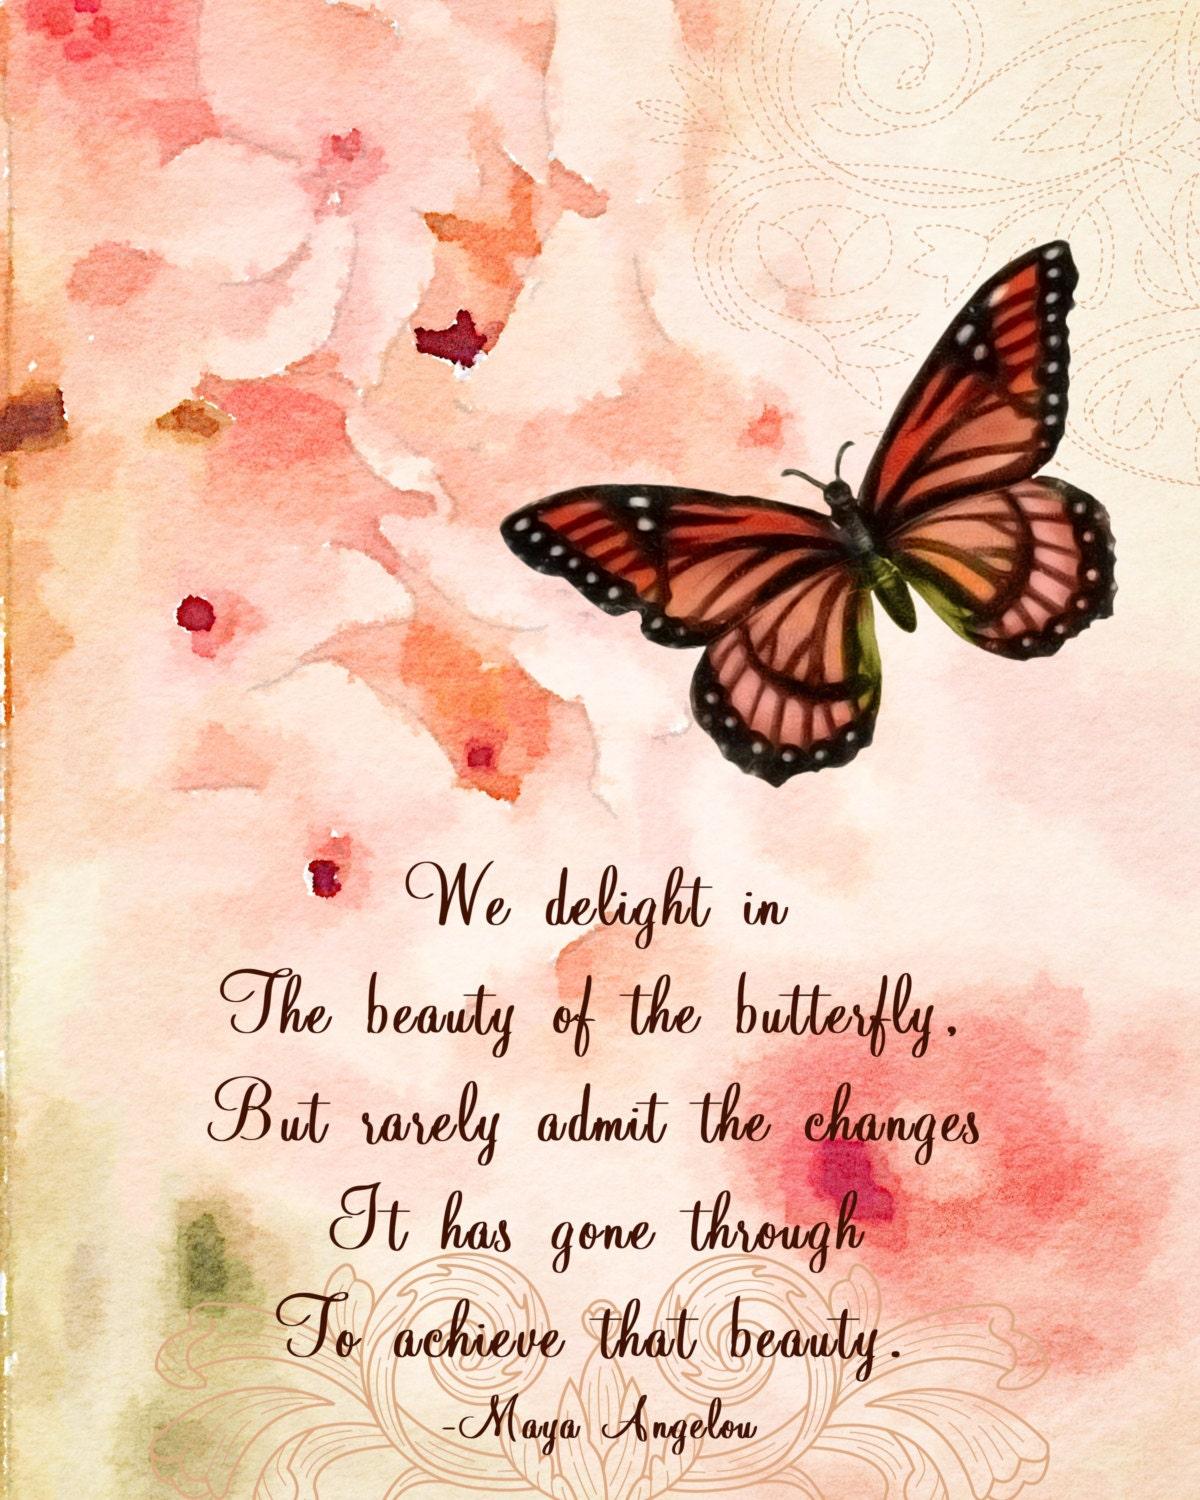 Maya Angelou A Butterfly Quote Shabby Chic Watercolor Motivational